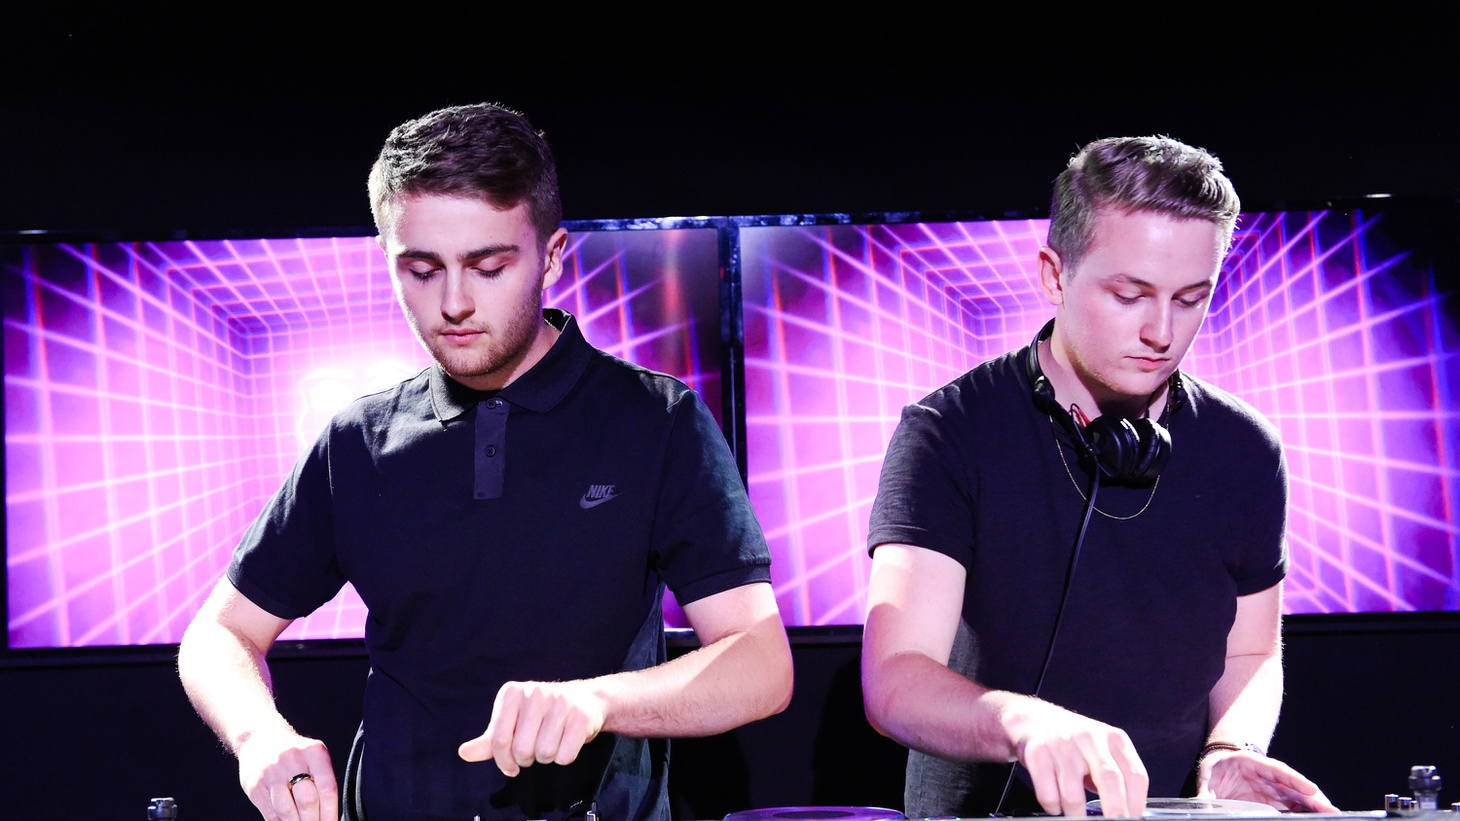 The British brothers behind Disclosure tapped into a wide range of talent for their latest release Caracal, from Lion Babe and Lorde to Miguel and Sam Smith.